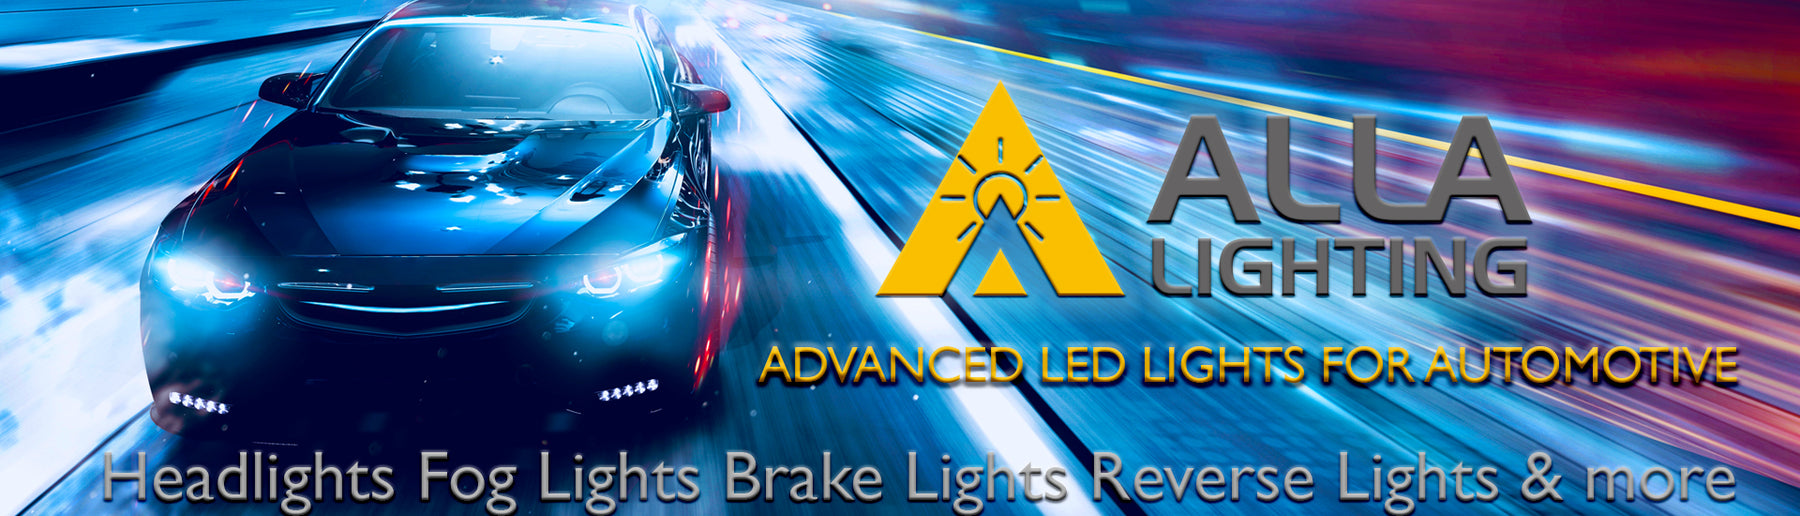 LED Headlight Bulbs Upgrade For Cars Trucks SUVs Motorcycles At  ALLALighting.com